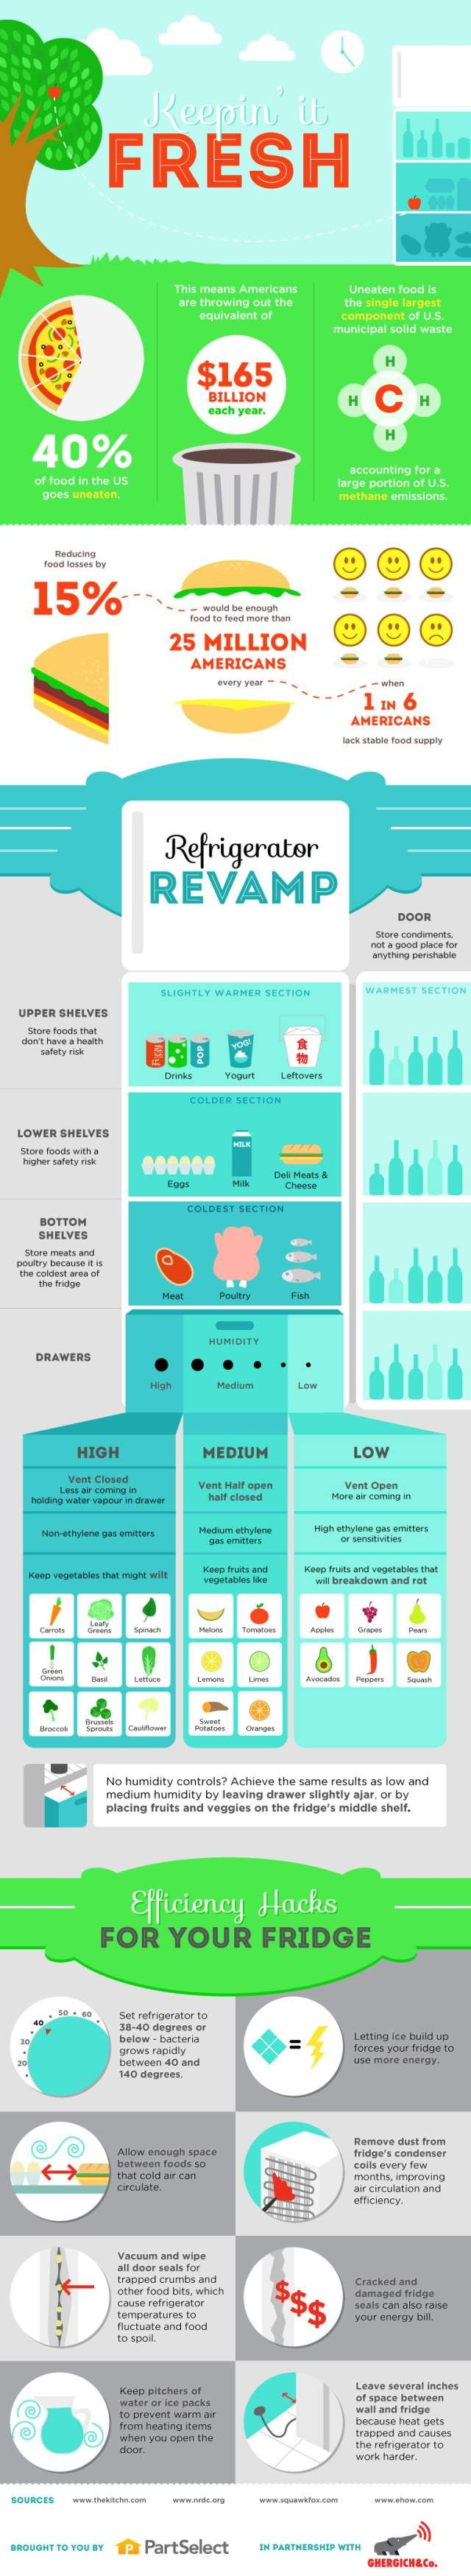 36 best Food Recovery Resources images on Pinterest | Food waste ...